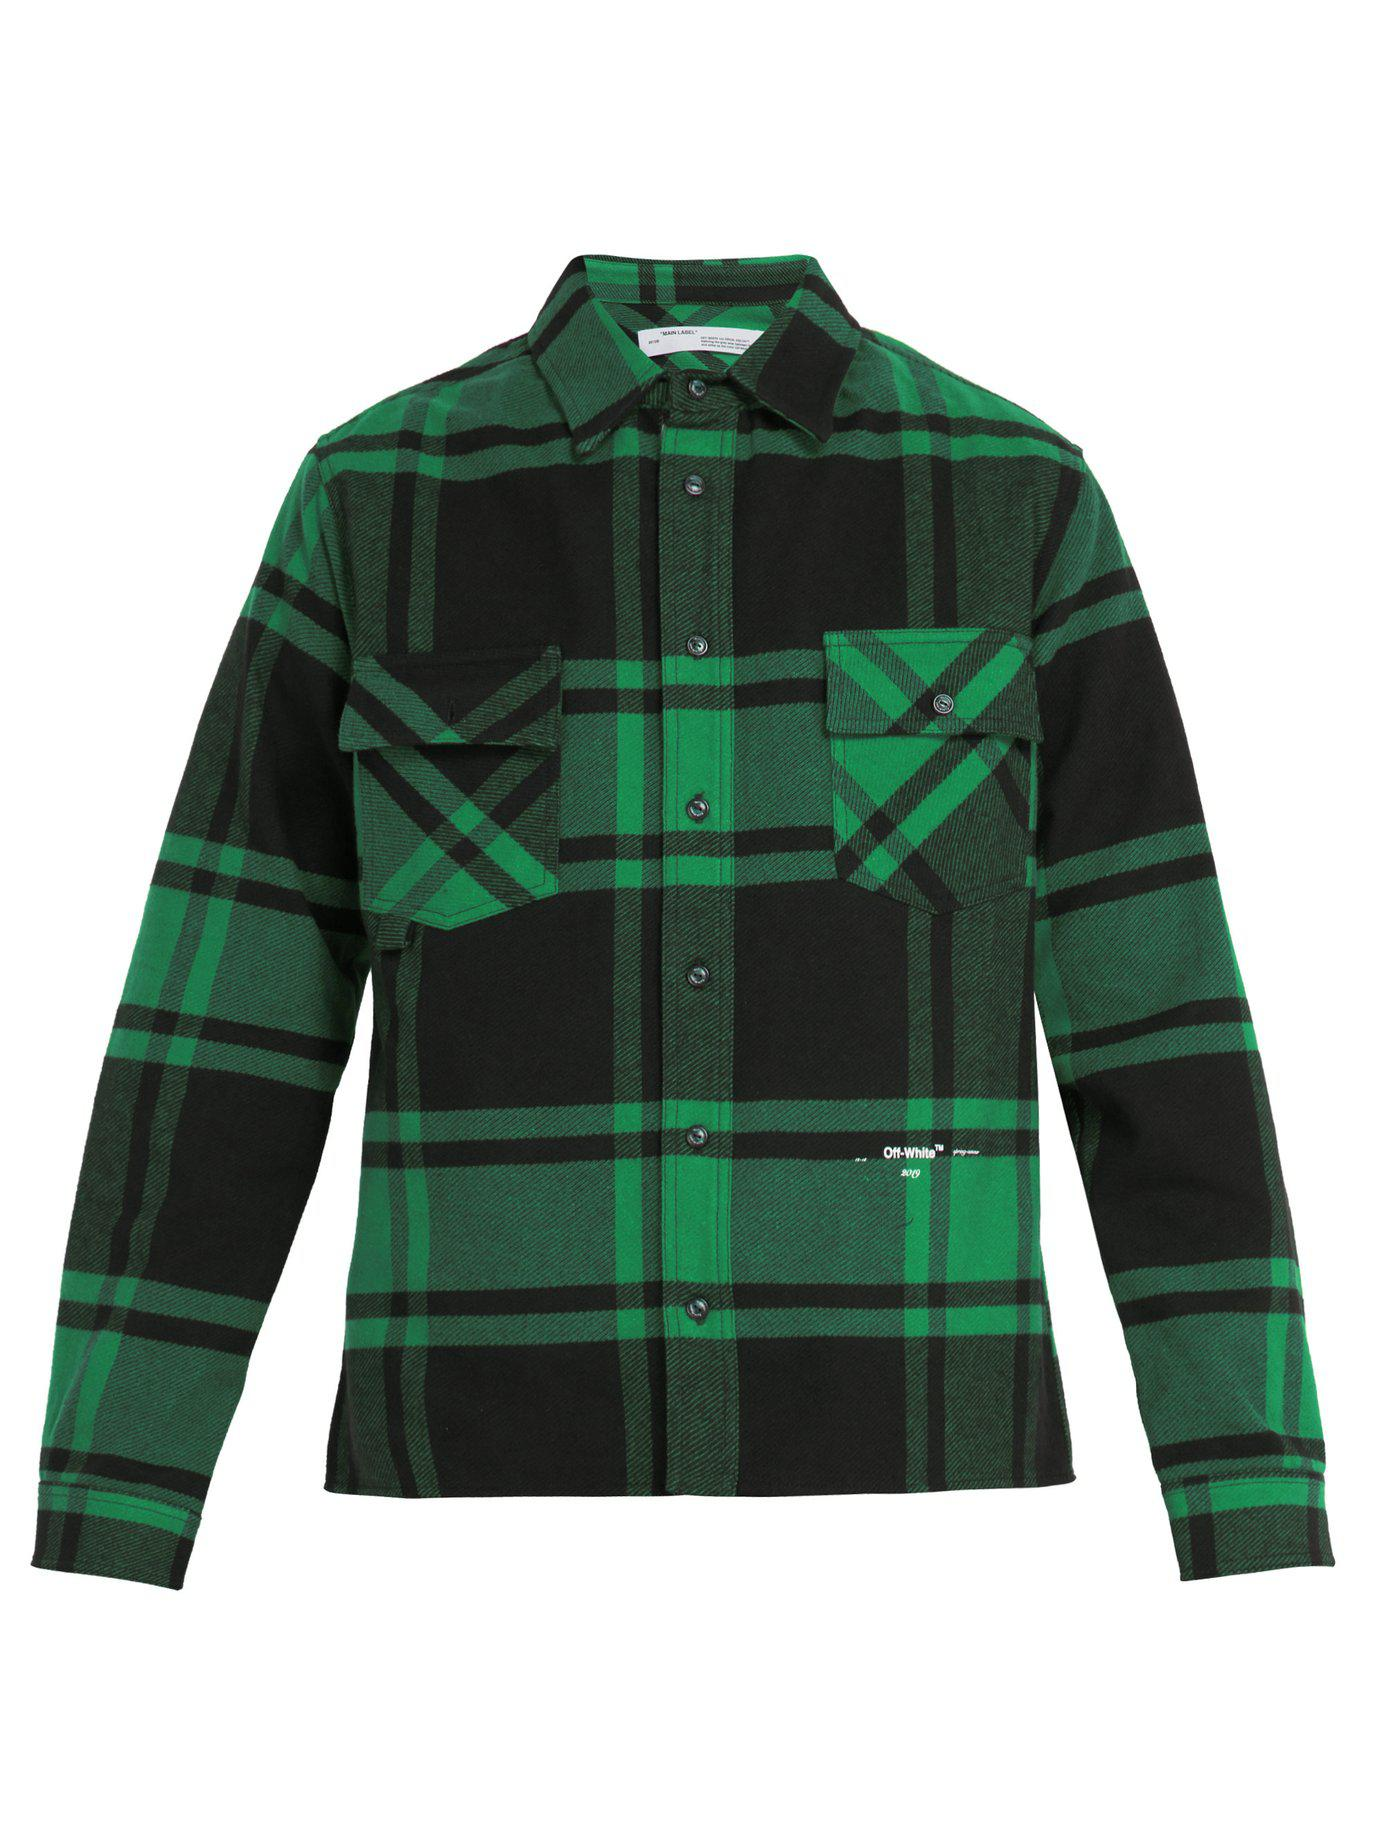 402b3d9dc94f Off-White c o Virgil Abloh. Men s Green Checked Cotton Blend Flannel Shirt